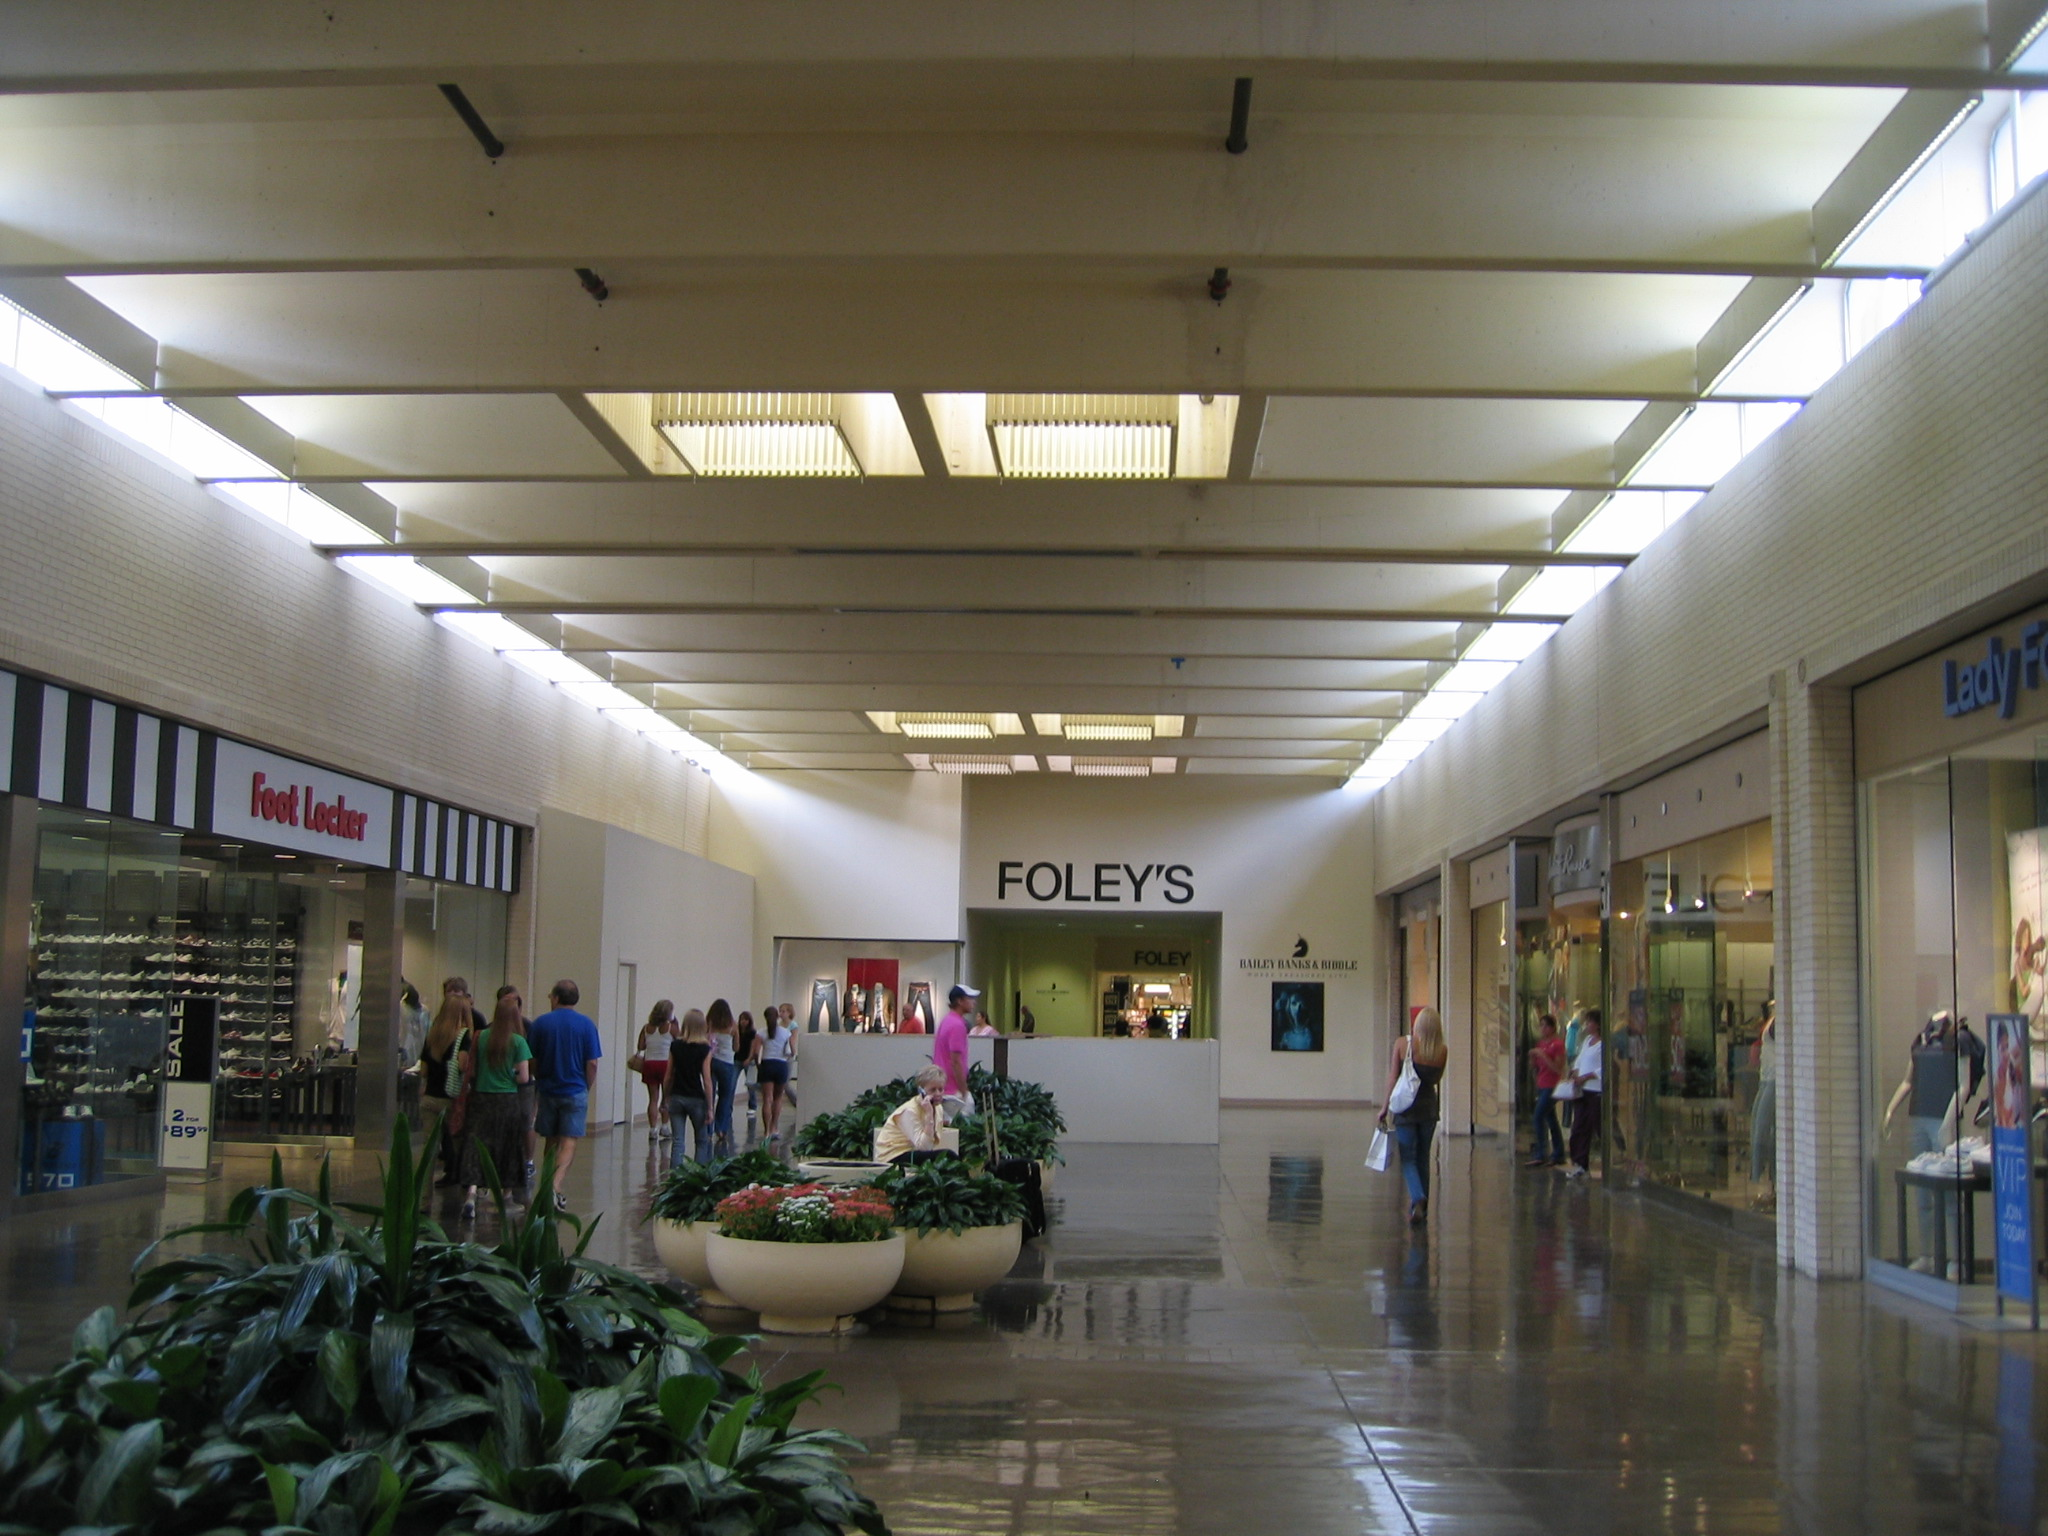 northpark-center-02.JPG